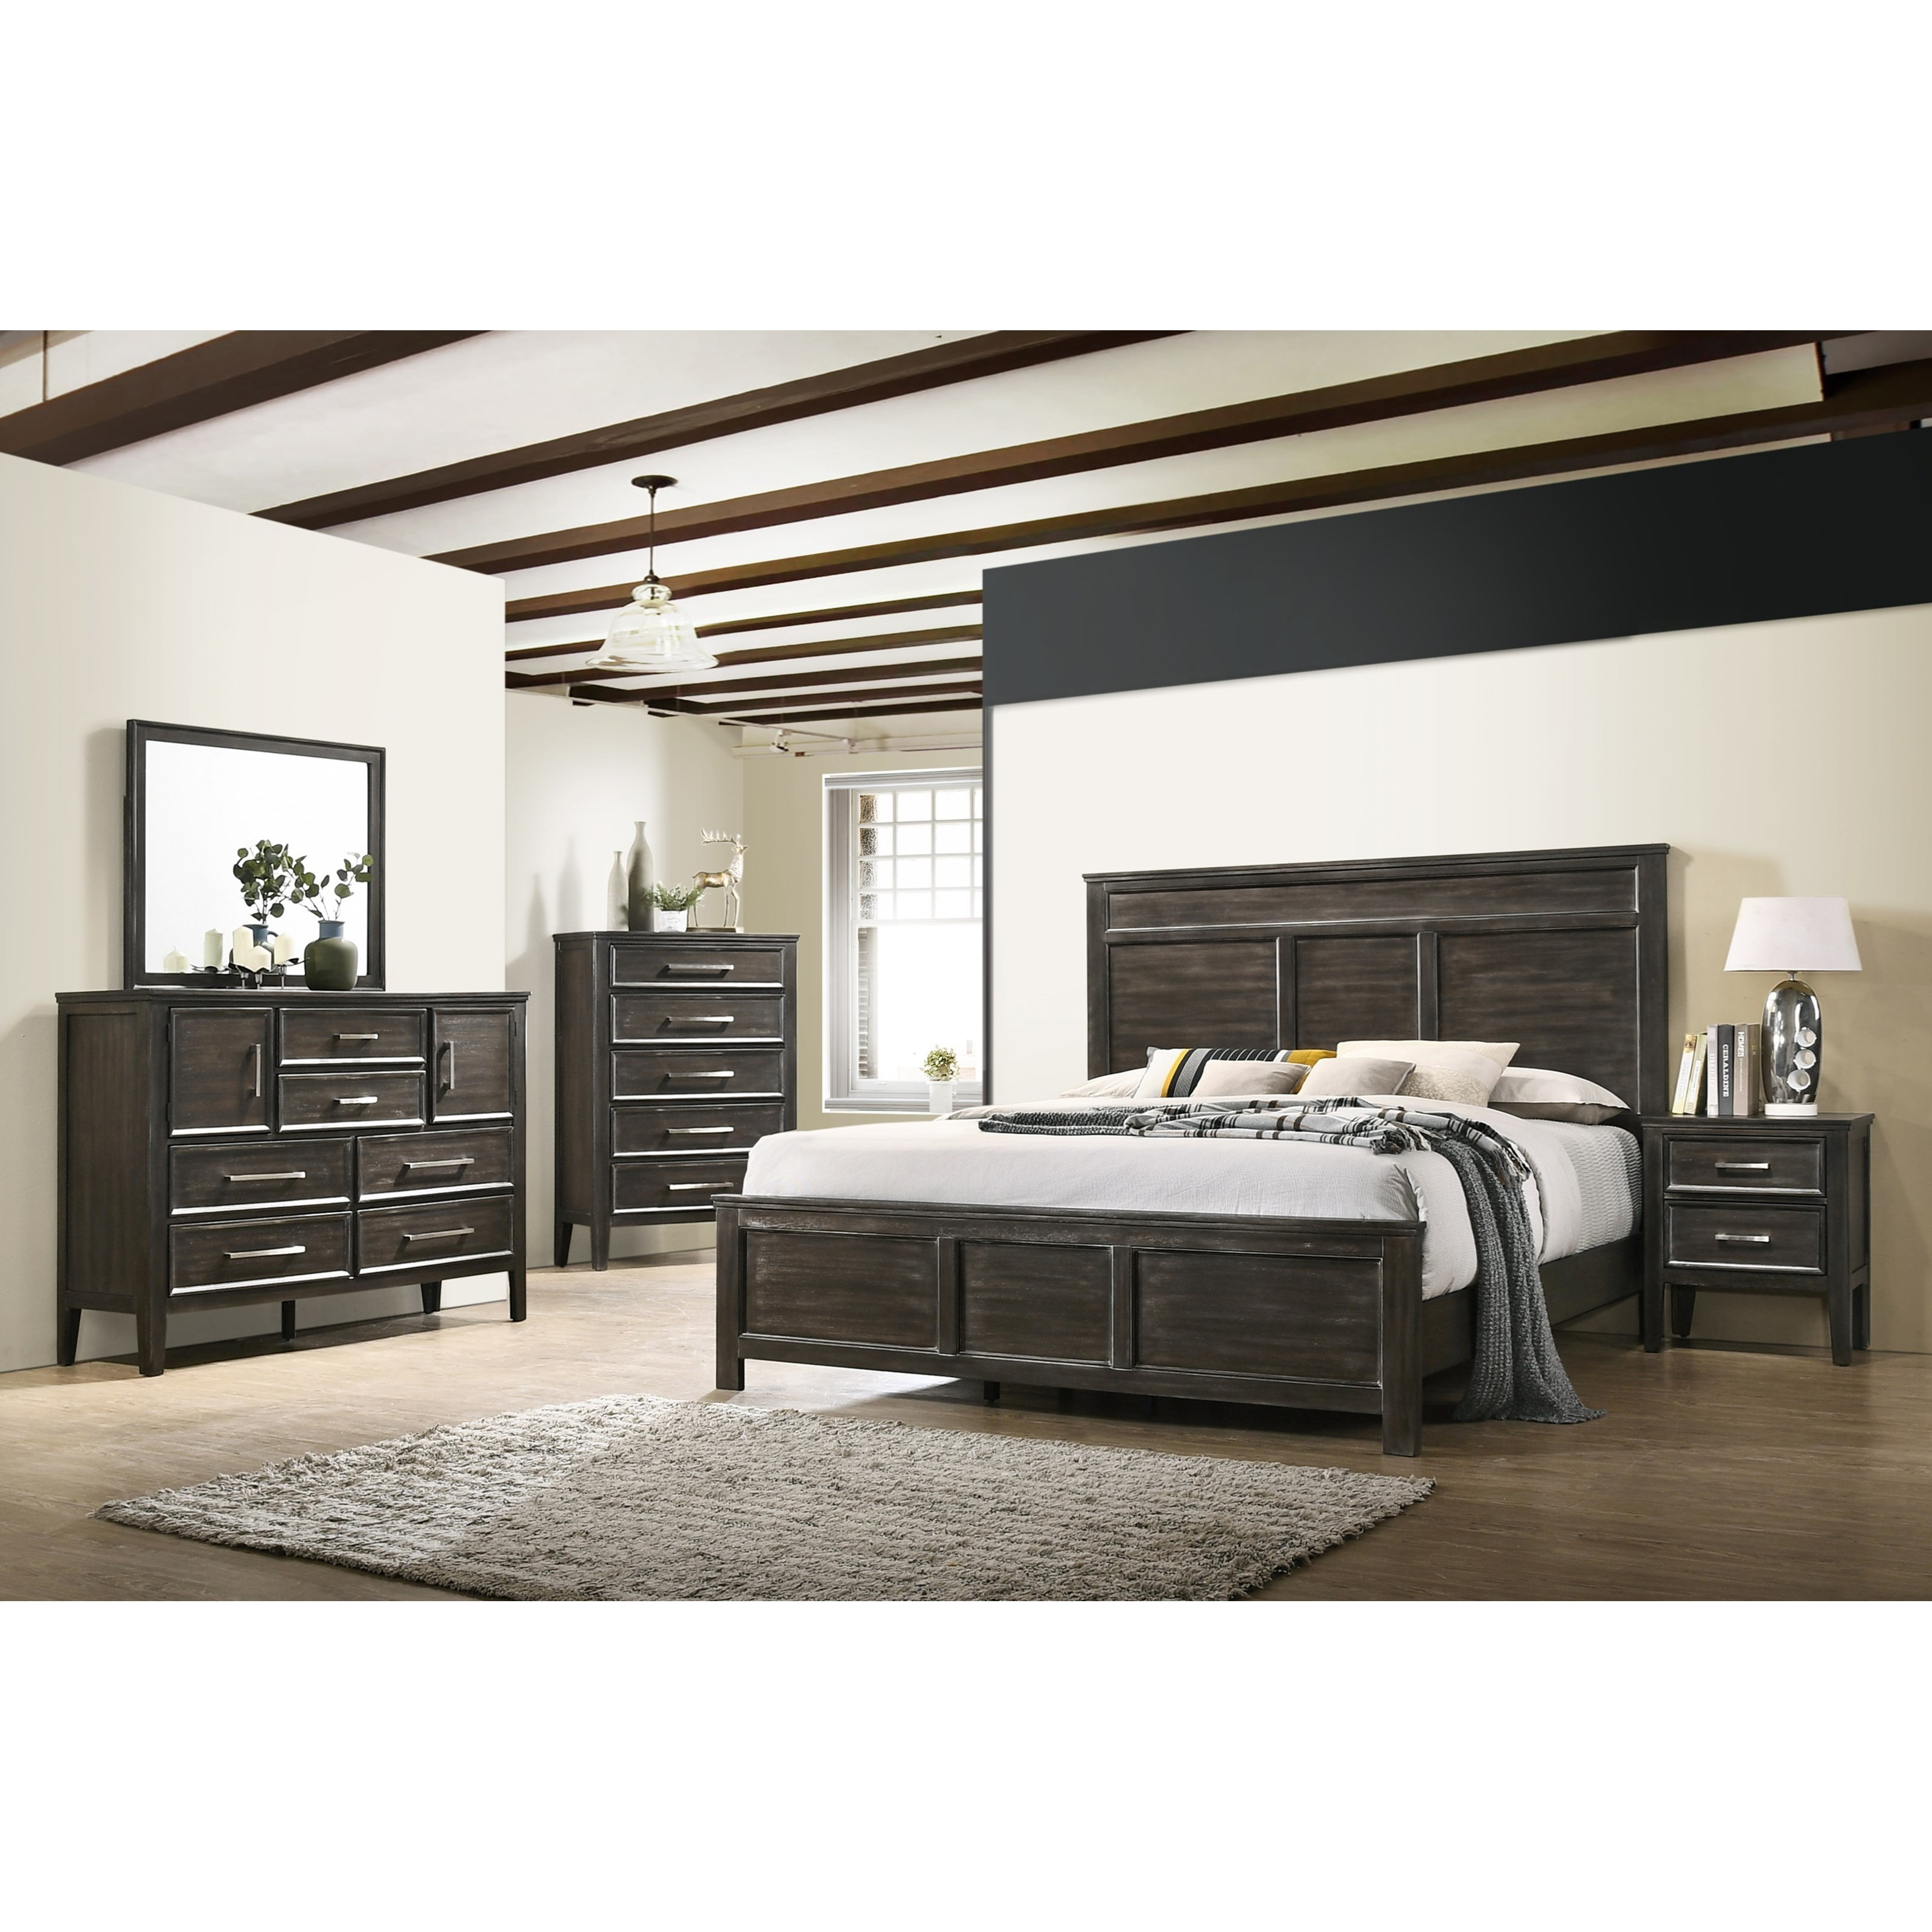 Andover King Bedroom Group by New Classic at Carolina Direct